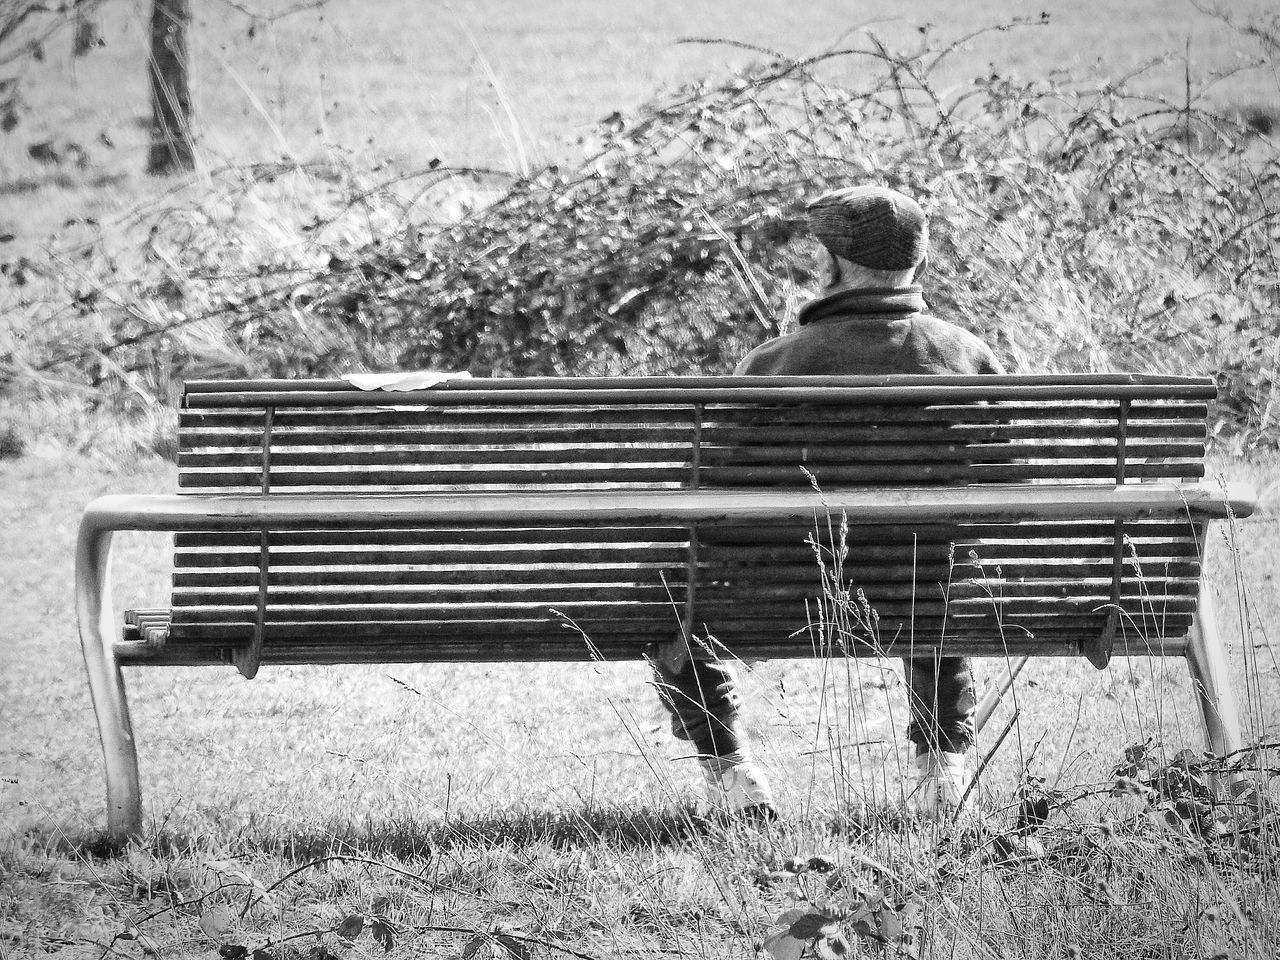 Contemplation Contemplating Bench Park Bench Outdoors Day Sitting One Person Nature Single Monochrome Black And White Park Bench Seat One Person Watching Cap Seated Lines Bushes Slatted Horizontal Lines Welcome To Black TCPM The Street Photographer - 2017 EyeEm Awards